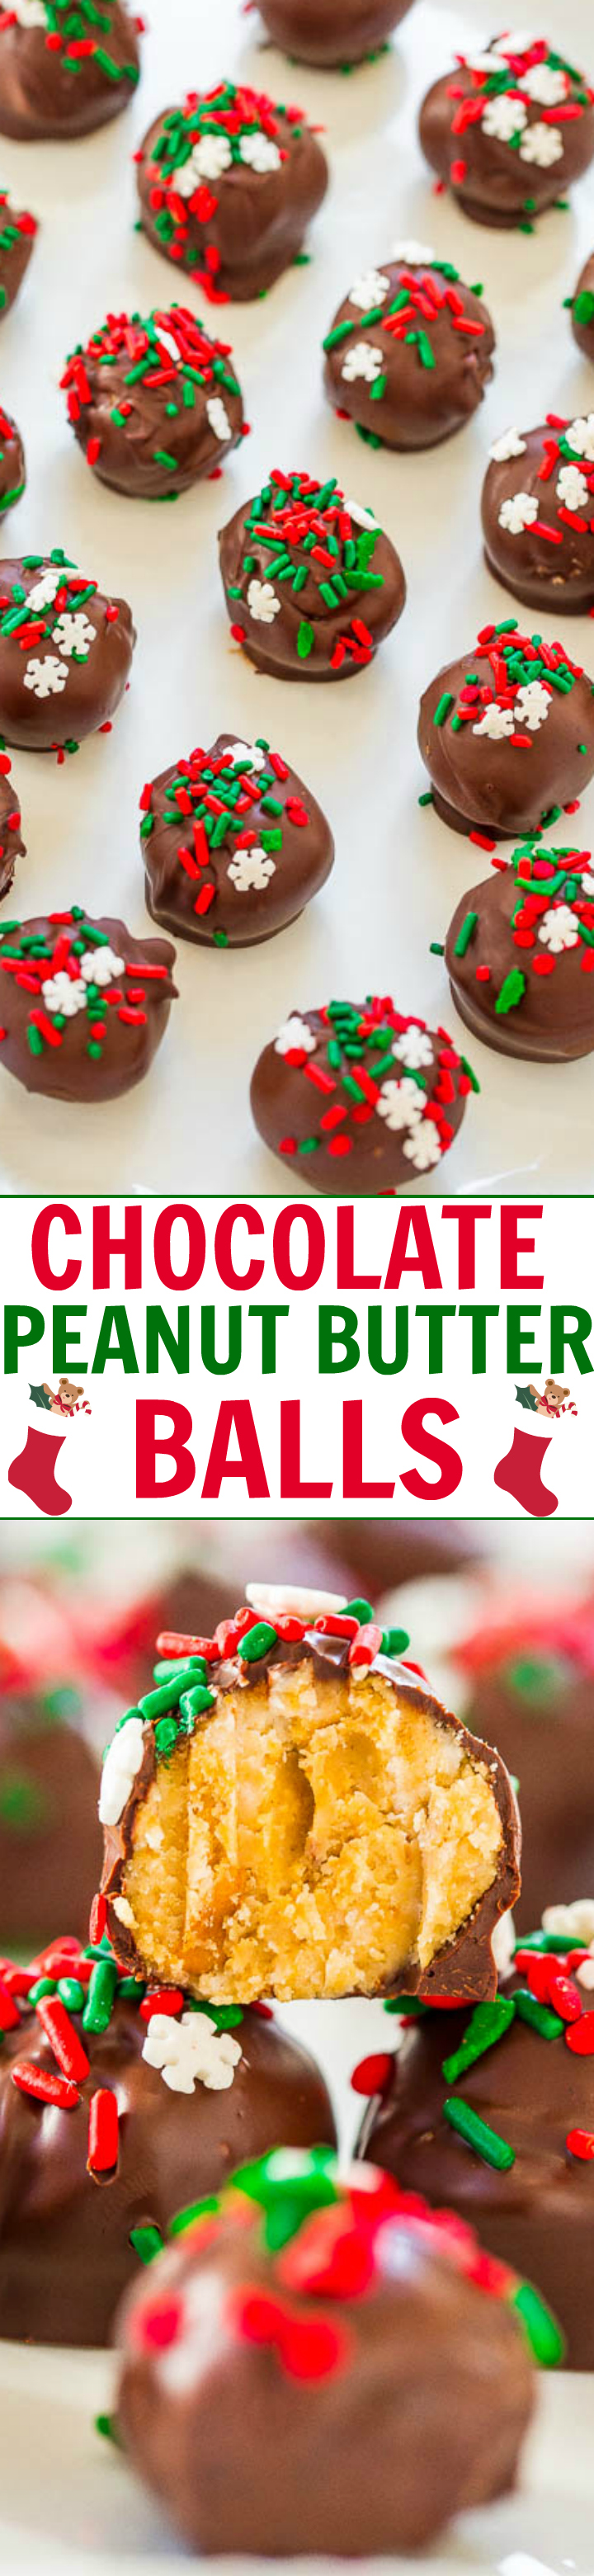 Chocolate Peanut Butter Balls - EASY, NO-BAKE treats that are a holiday favorite!! They have it all: Salty, sweet, crunchy, with chocolate and peanut butter! Great for cookie exchanges or impromptu parties!!